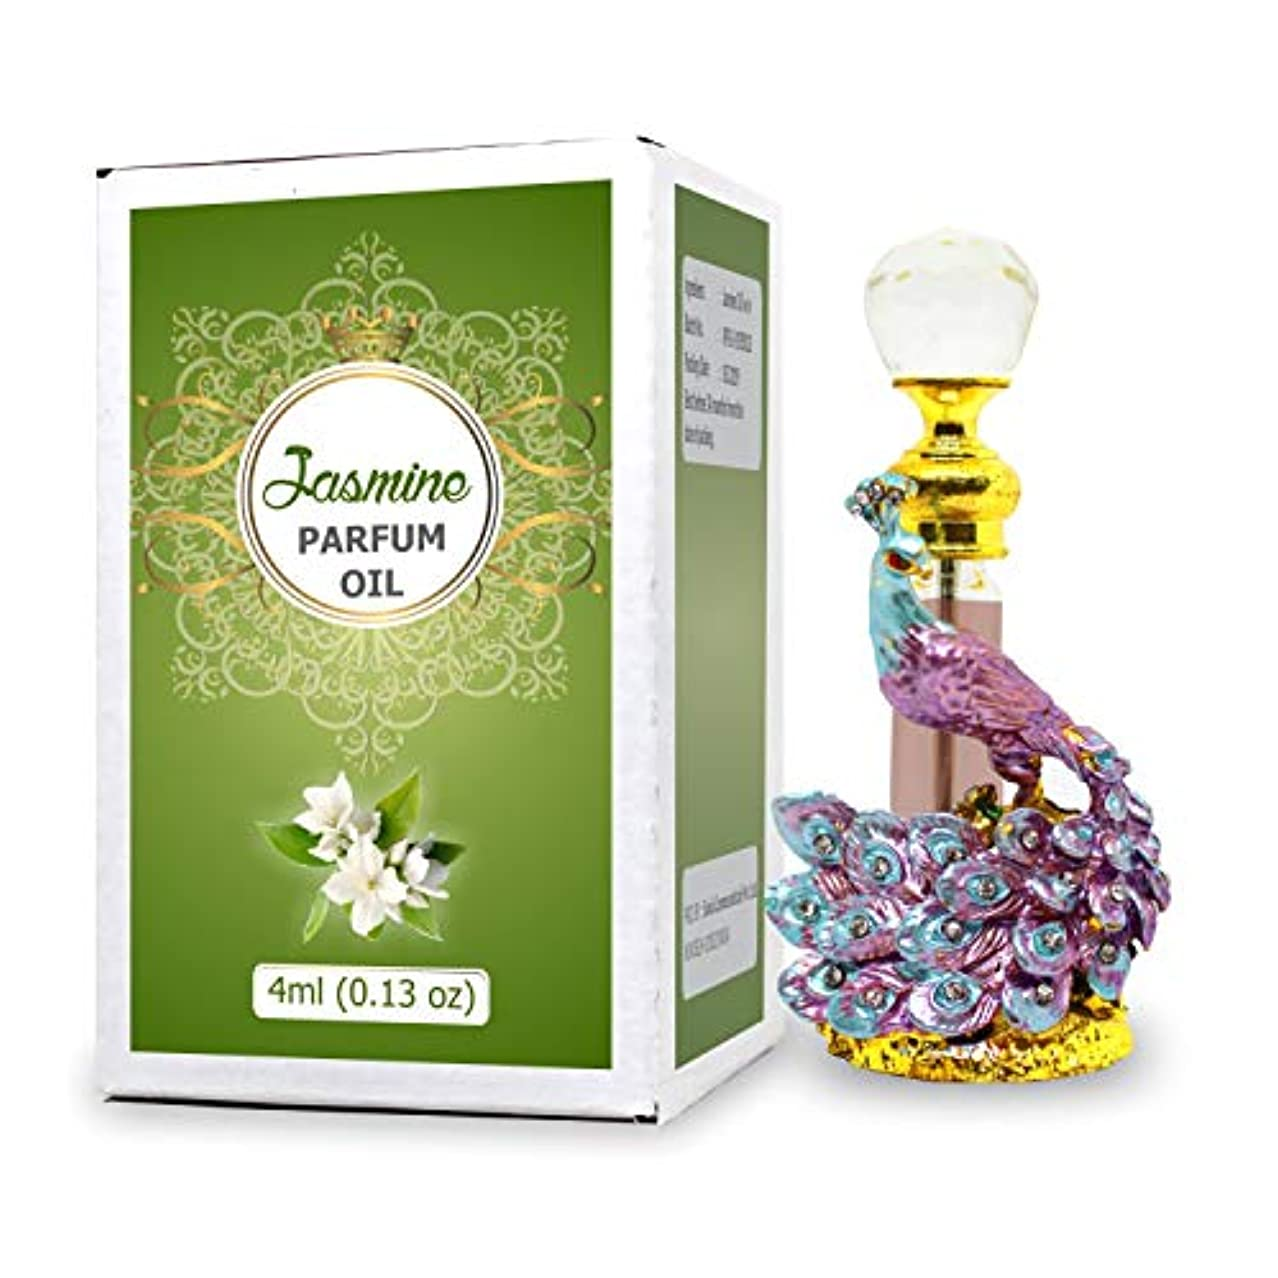 増強咽頭精査Jasmine Parfum Oil - Alcohol Free Perfume Oil - Long Lasting Jasmine Fragrance For Women - 4 ML